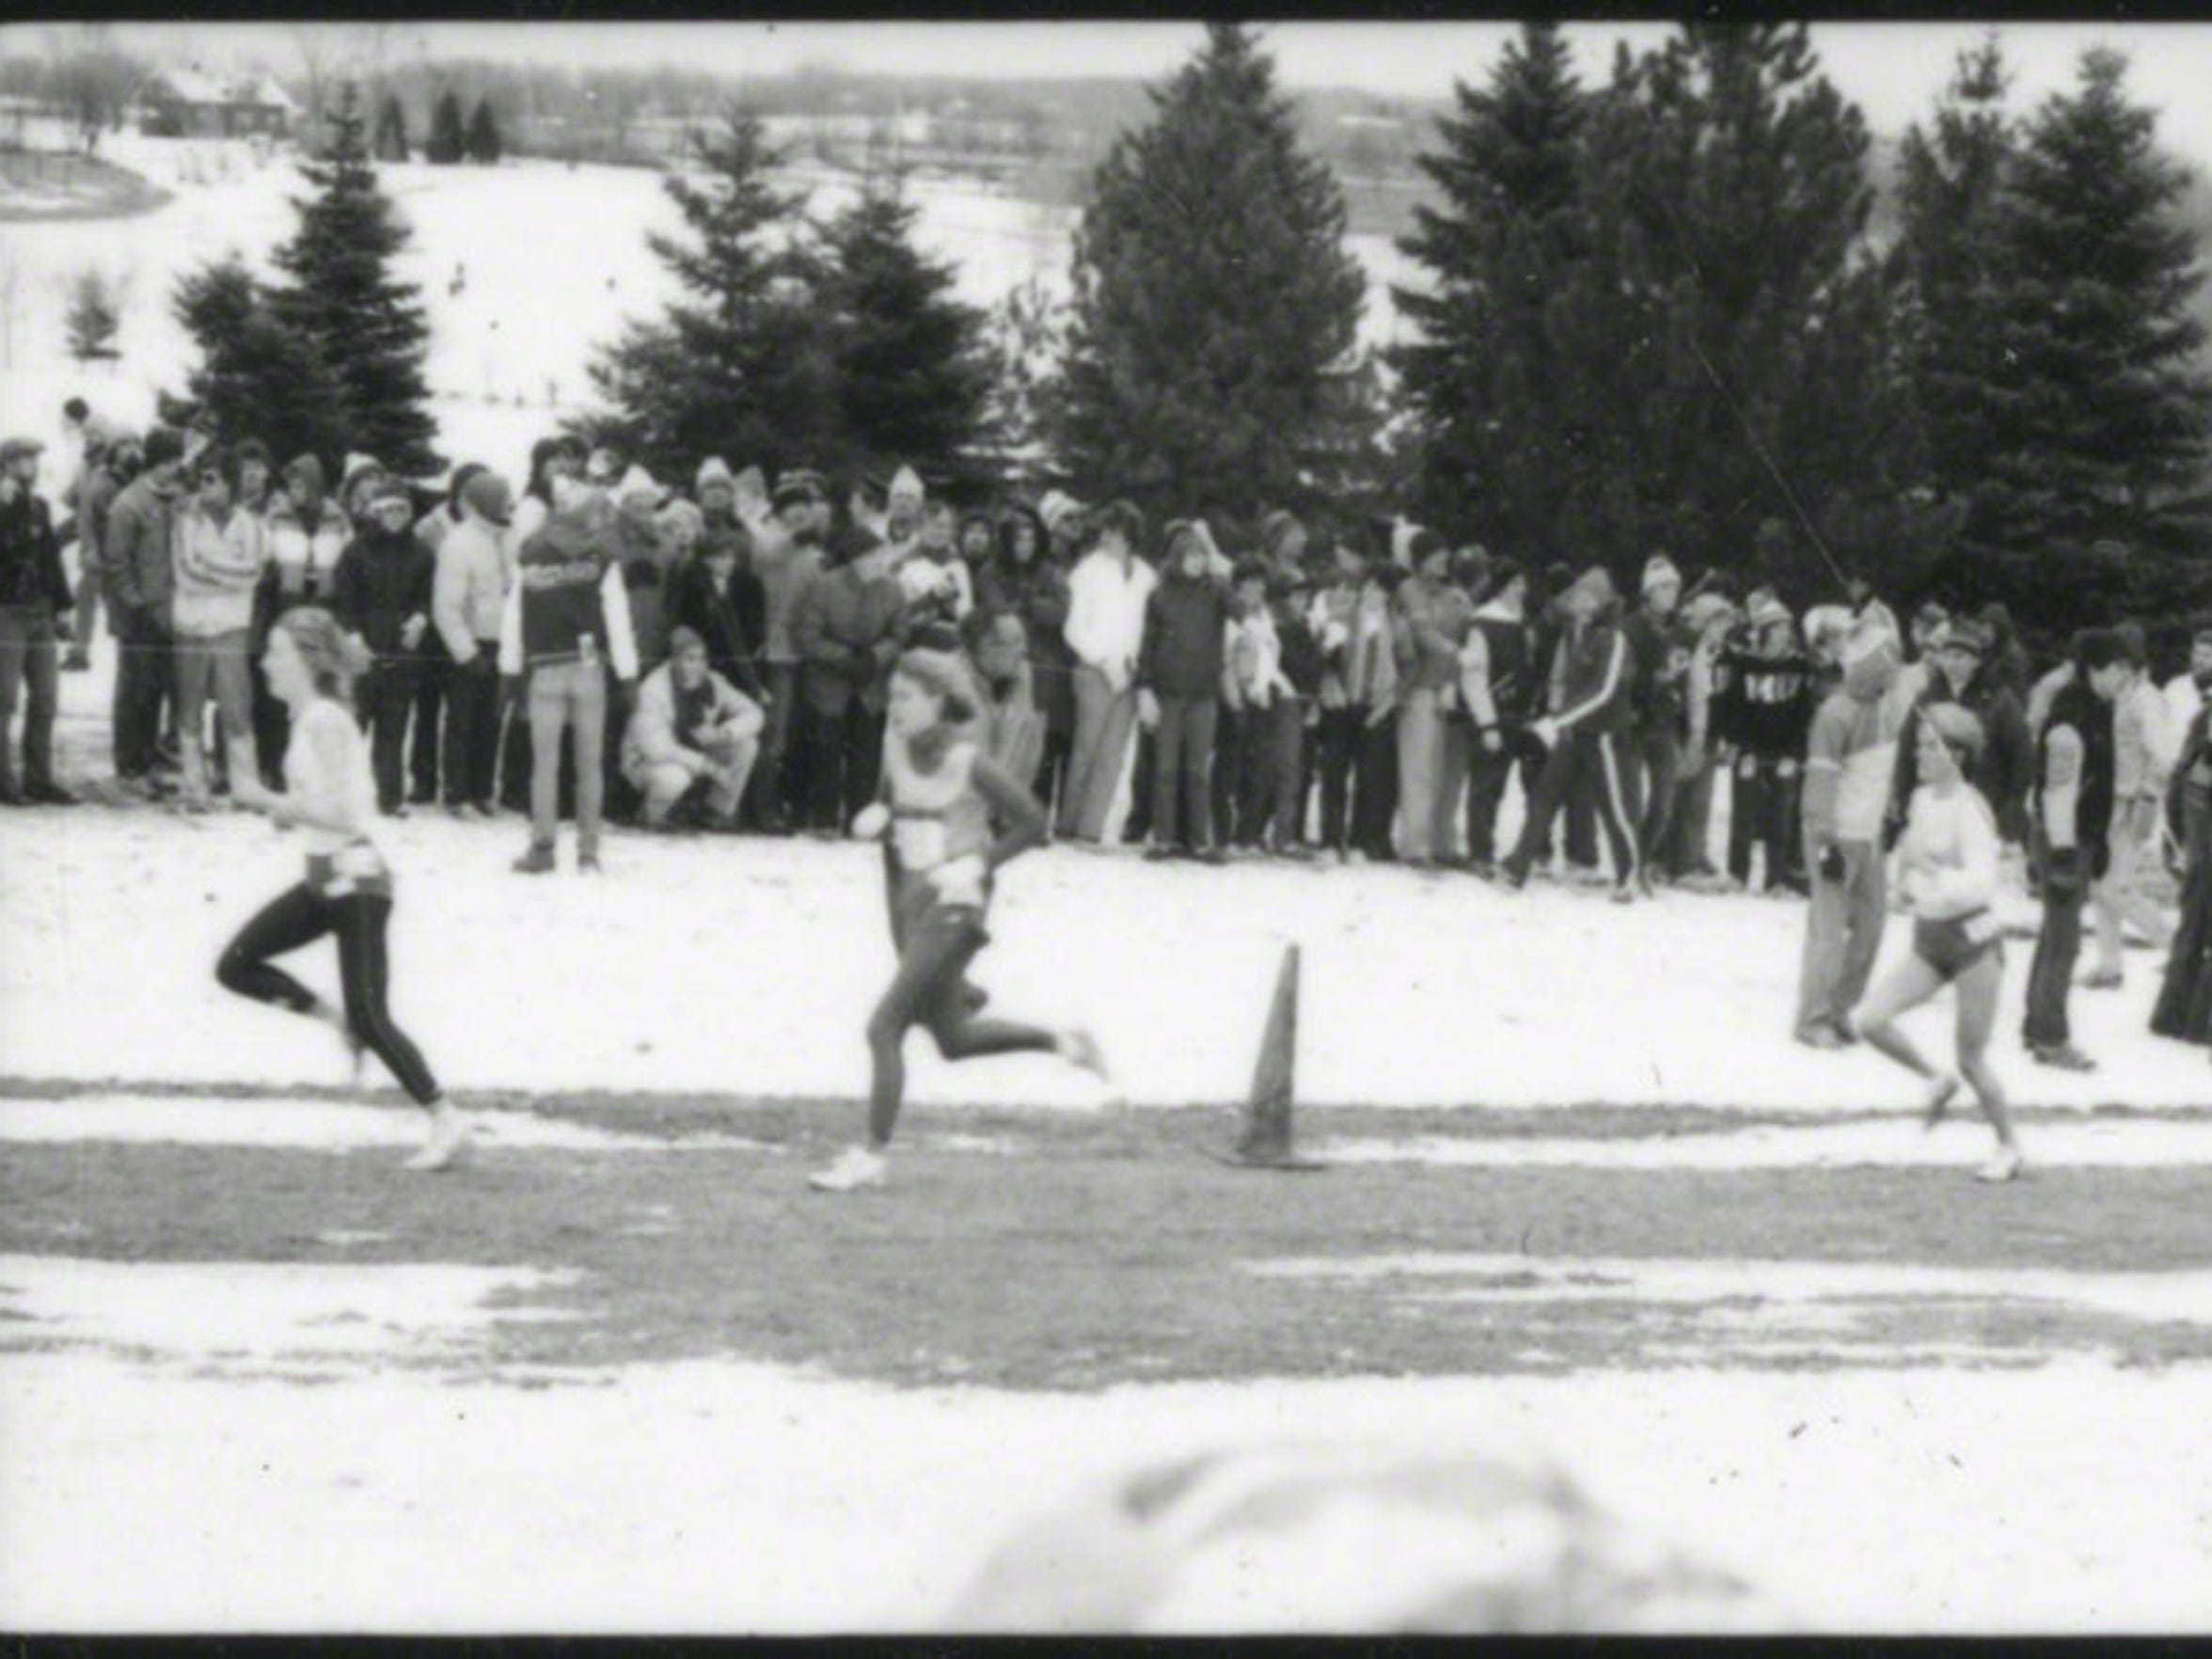 Sheryl Maahs (middle runner) and Julie Rose (third runner) run through the cold at the NCAA National Cross Country Championships on Nov. 25, 1985, in Wisconsin.